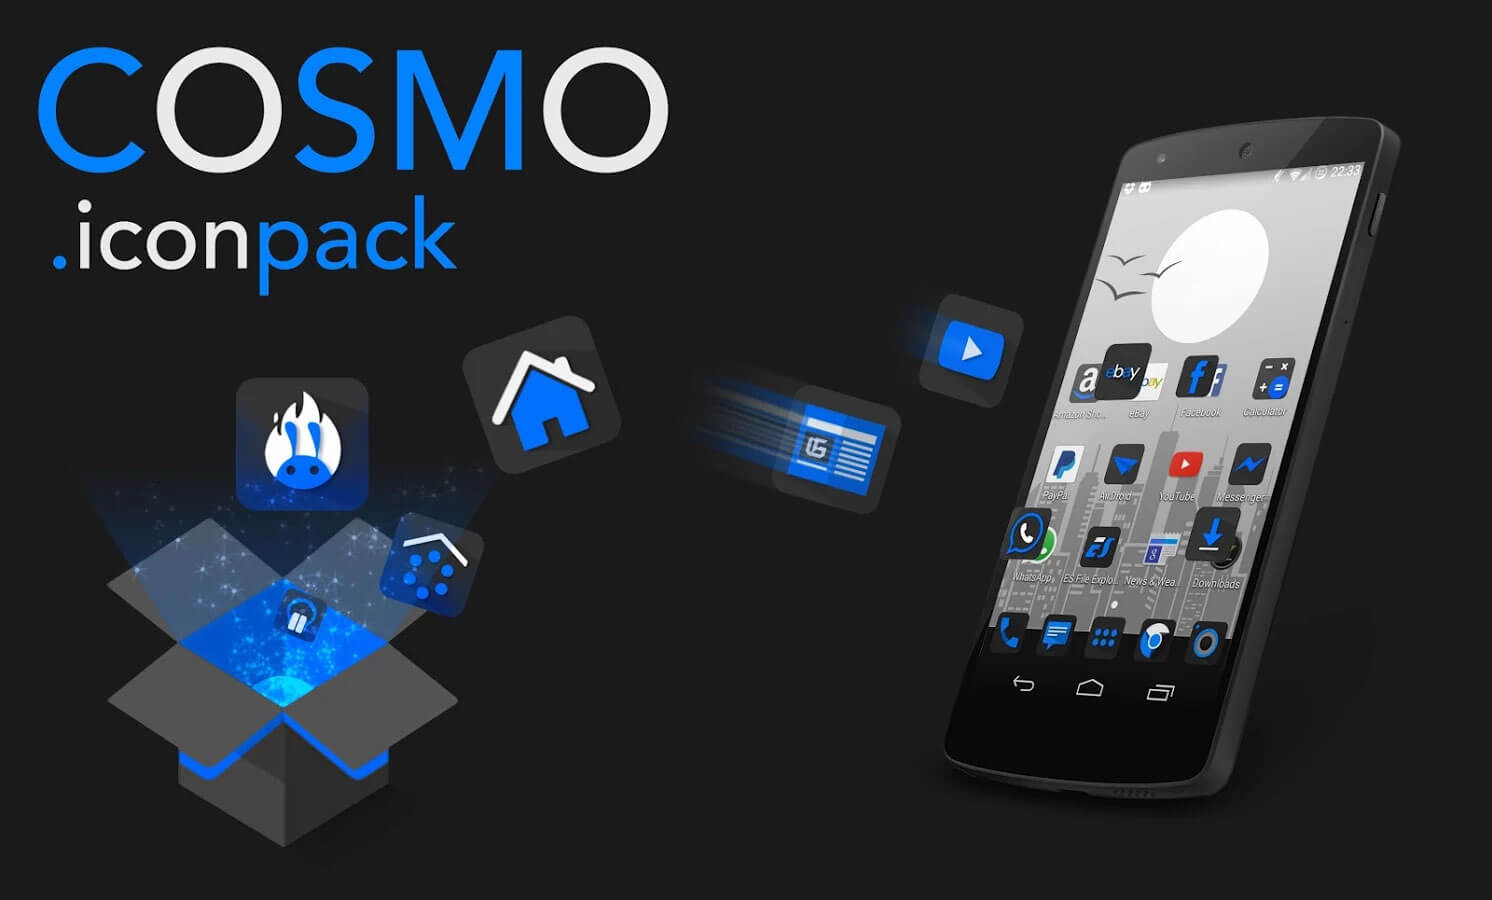 Cosmo Icon Pack